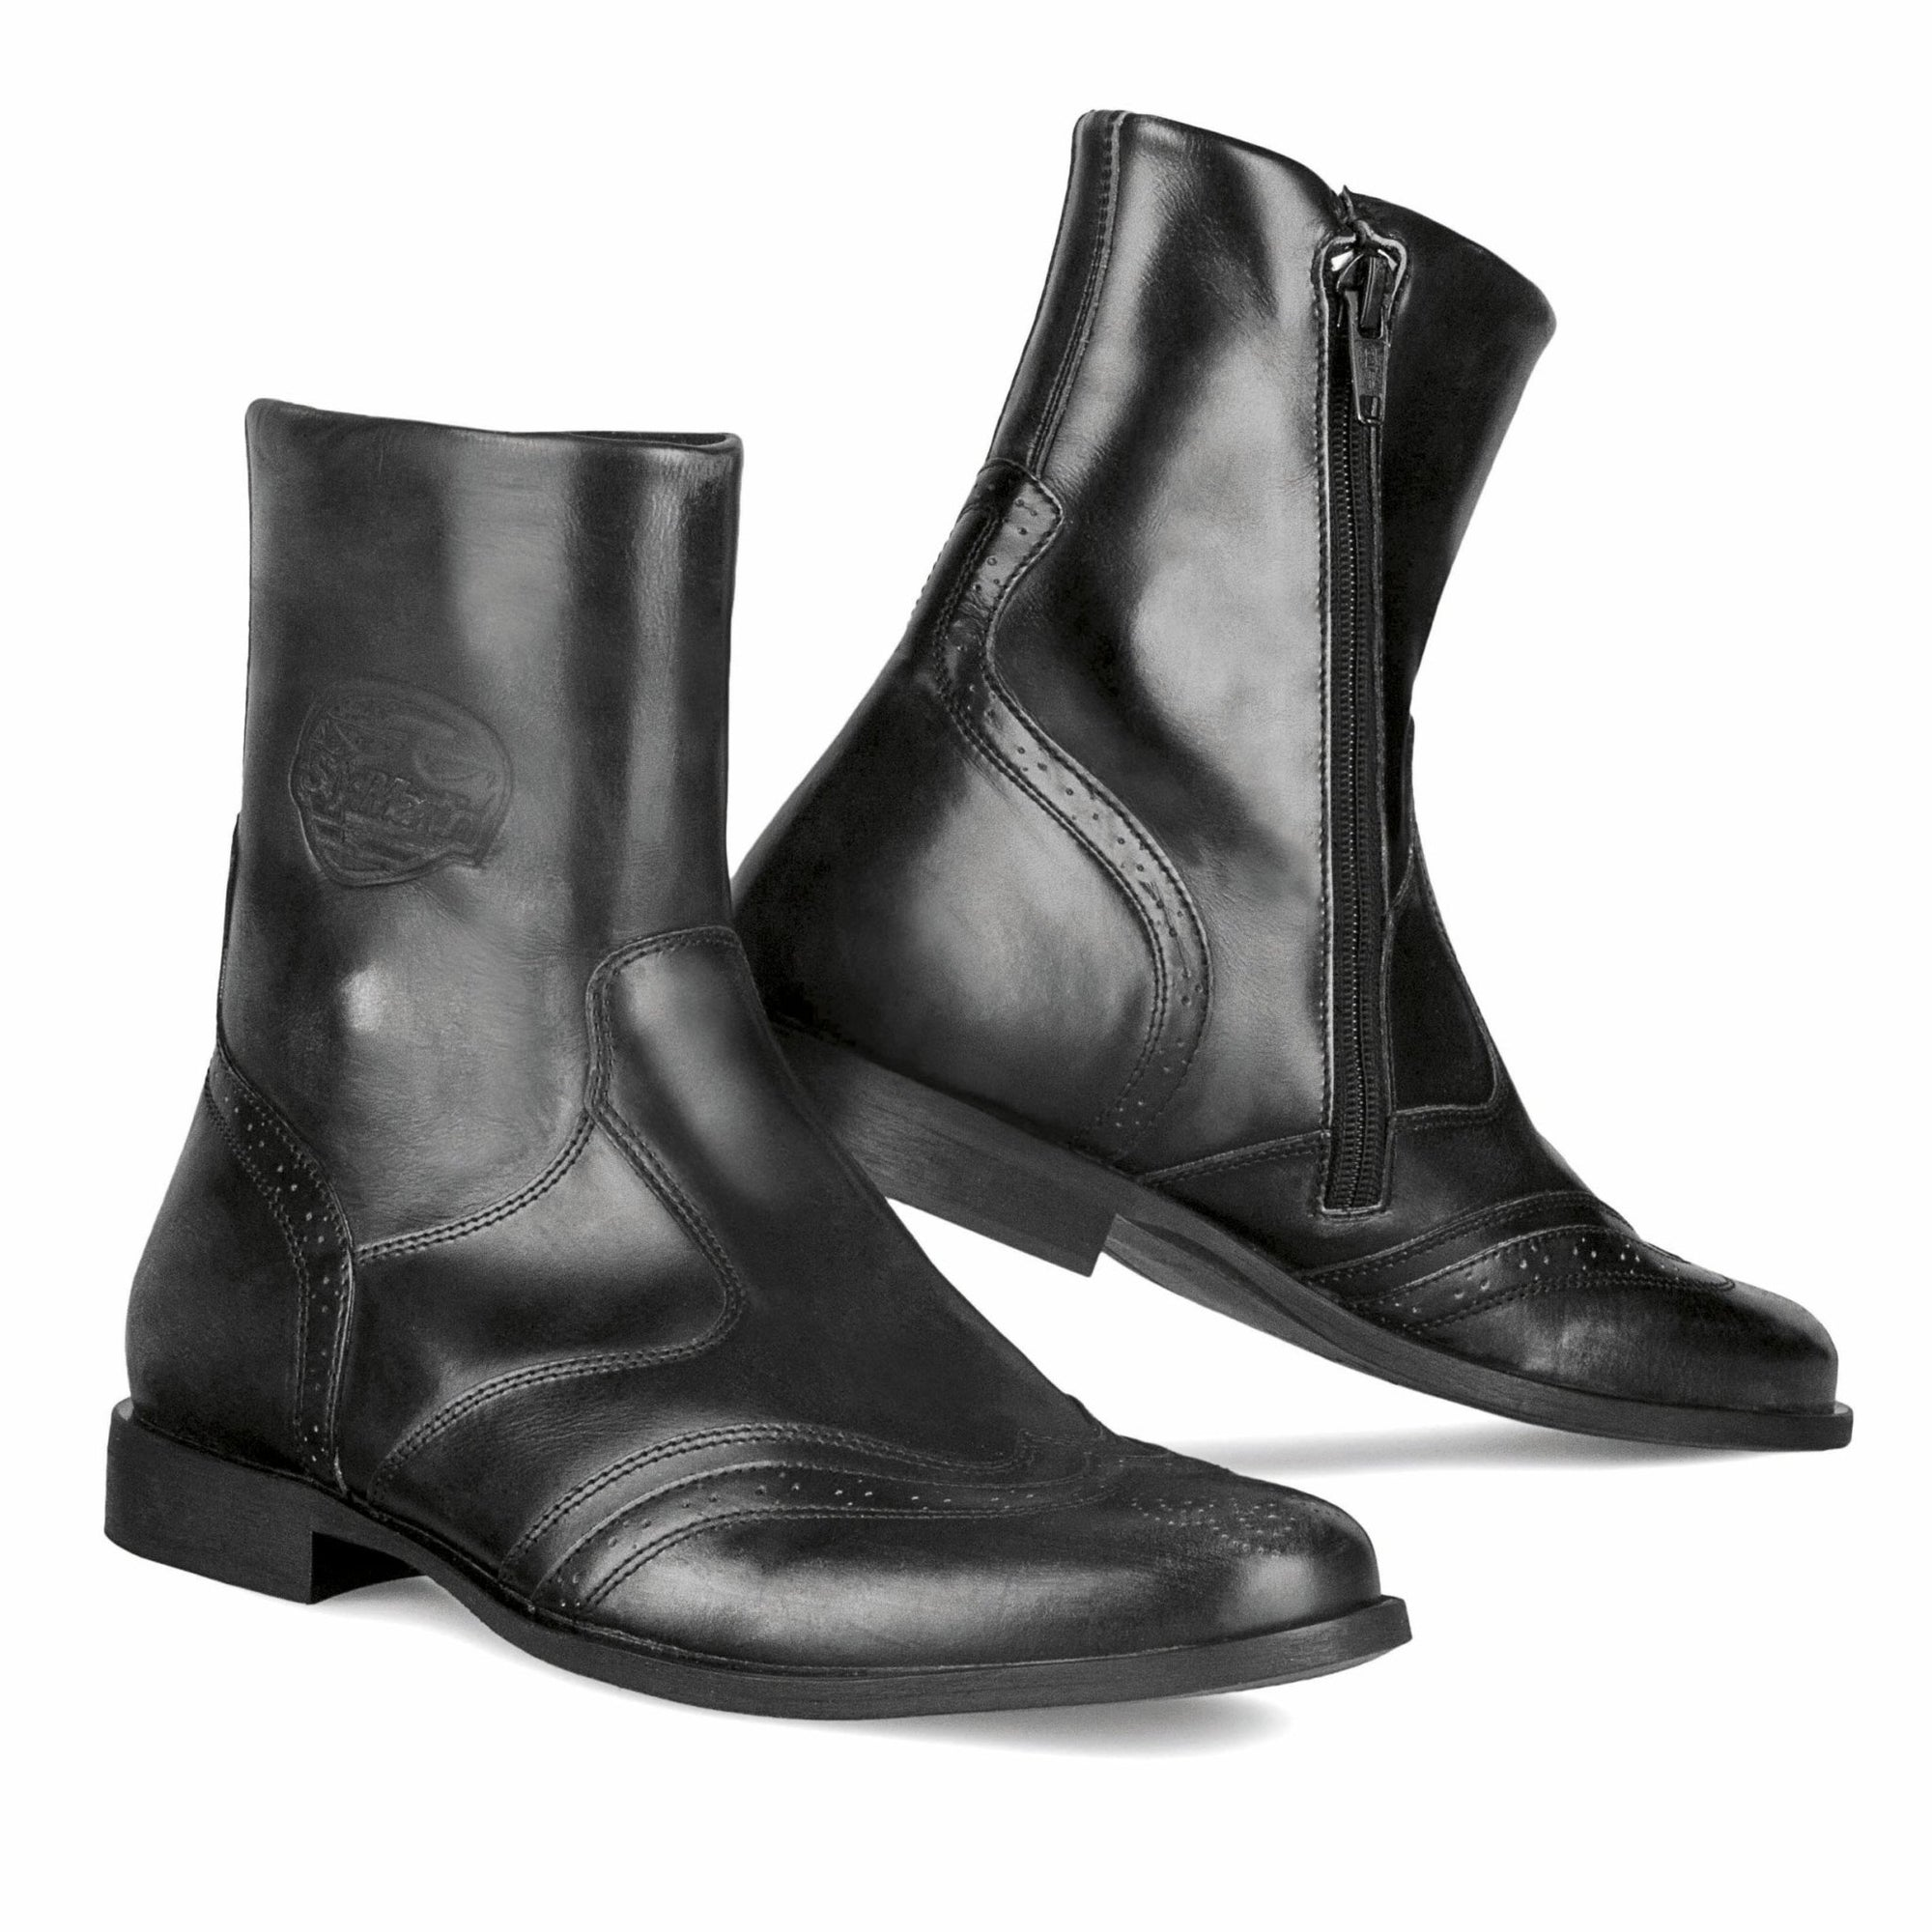 Stylmartin - Stylmartin Oxford WP Urban in Black - Boots - Salt Flats Clothing